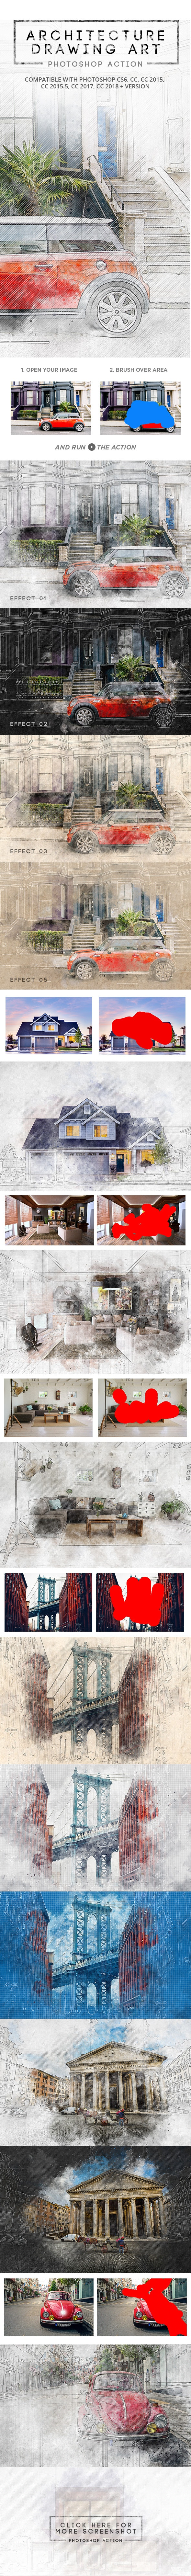 Architecture Drawing Art - Photoshop Action - Photo Effects Actions